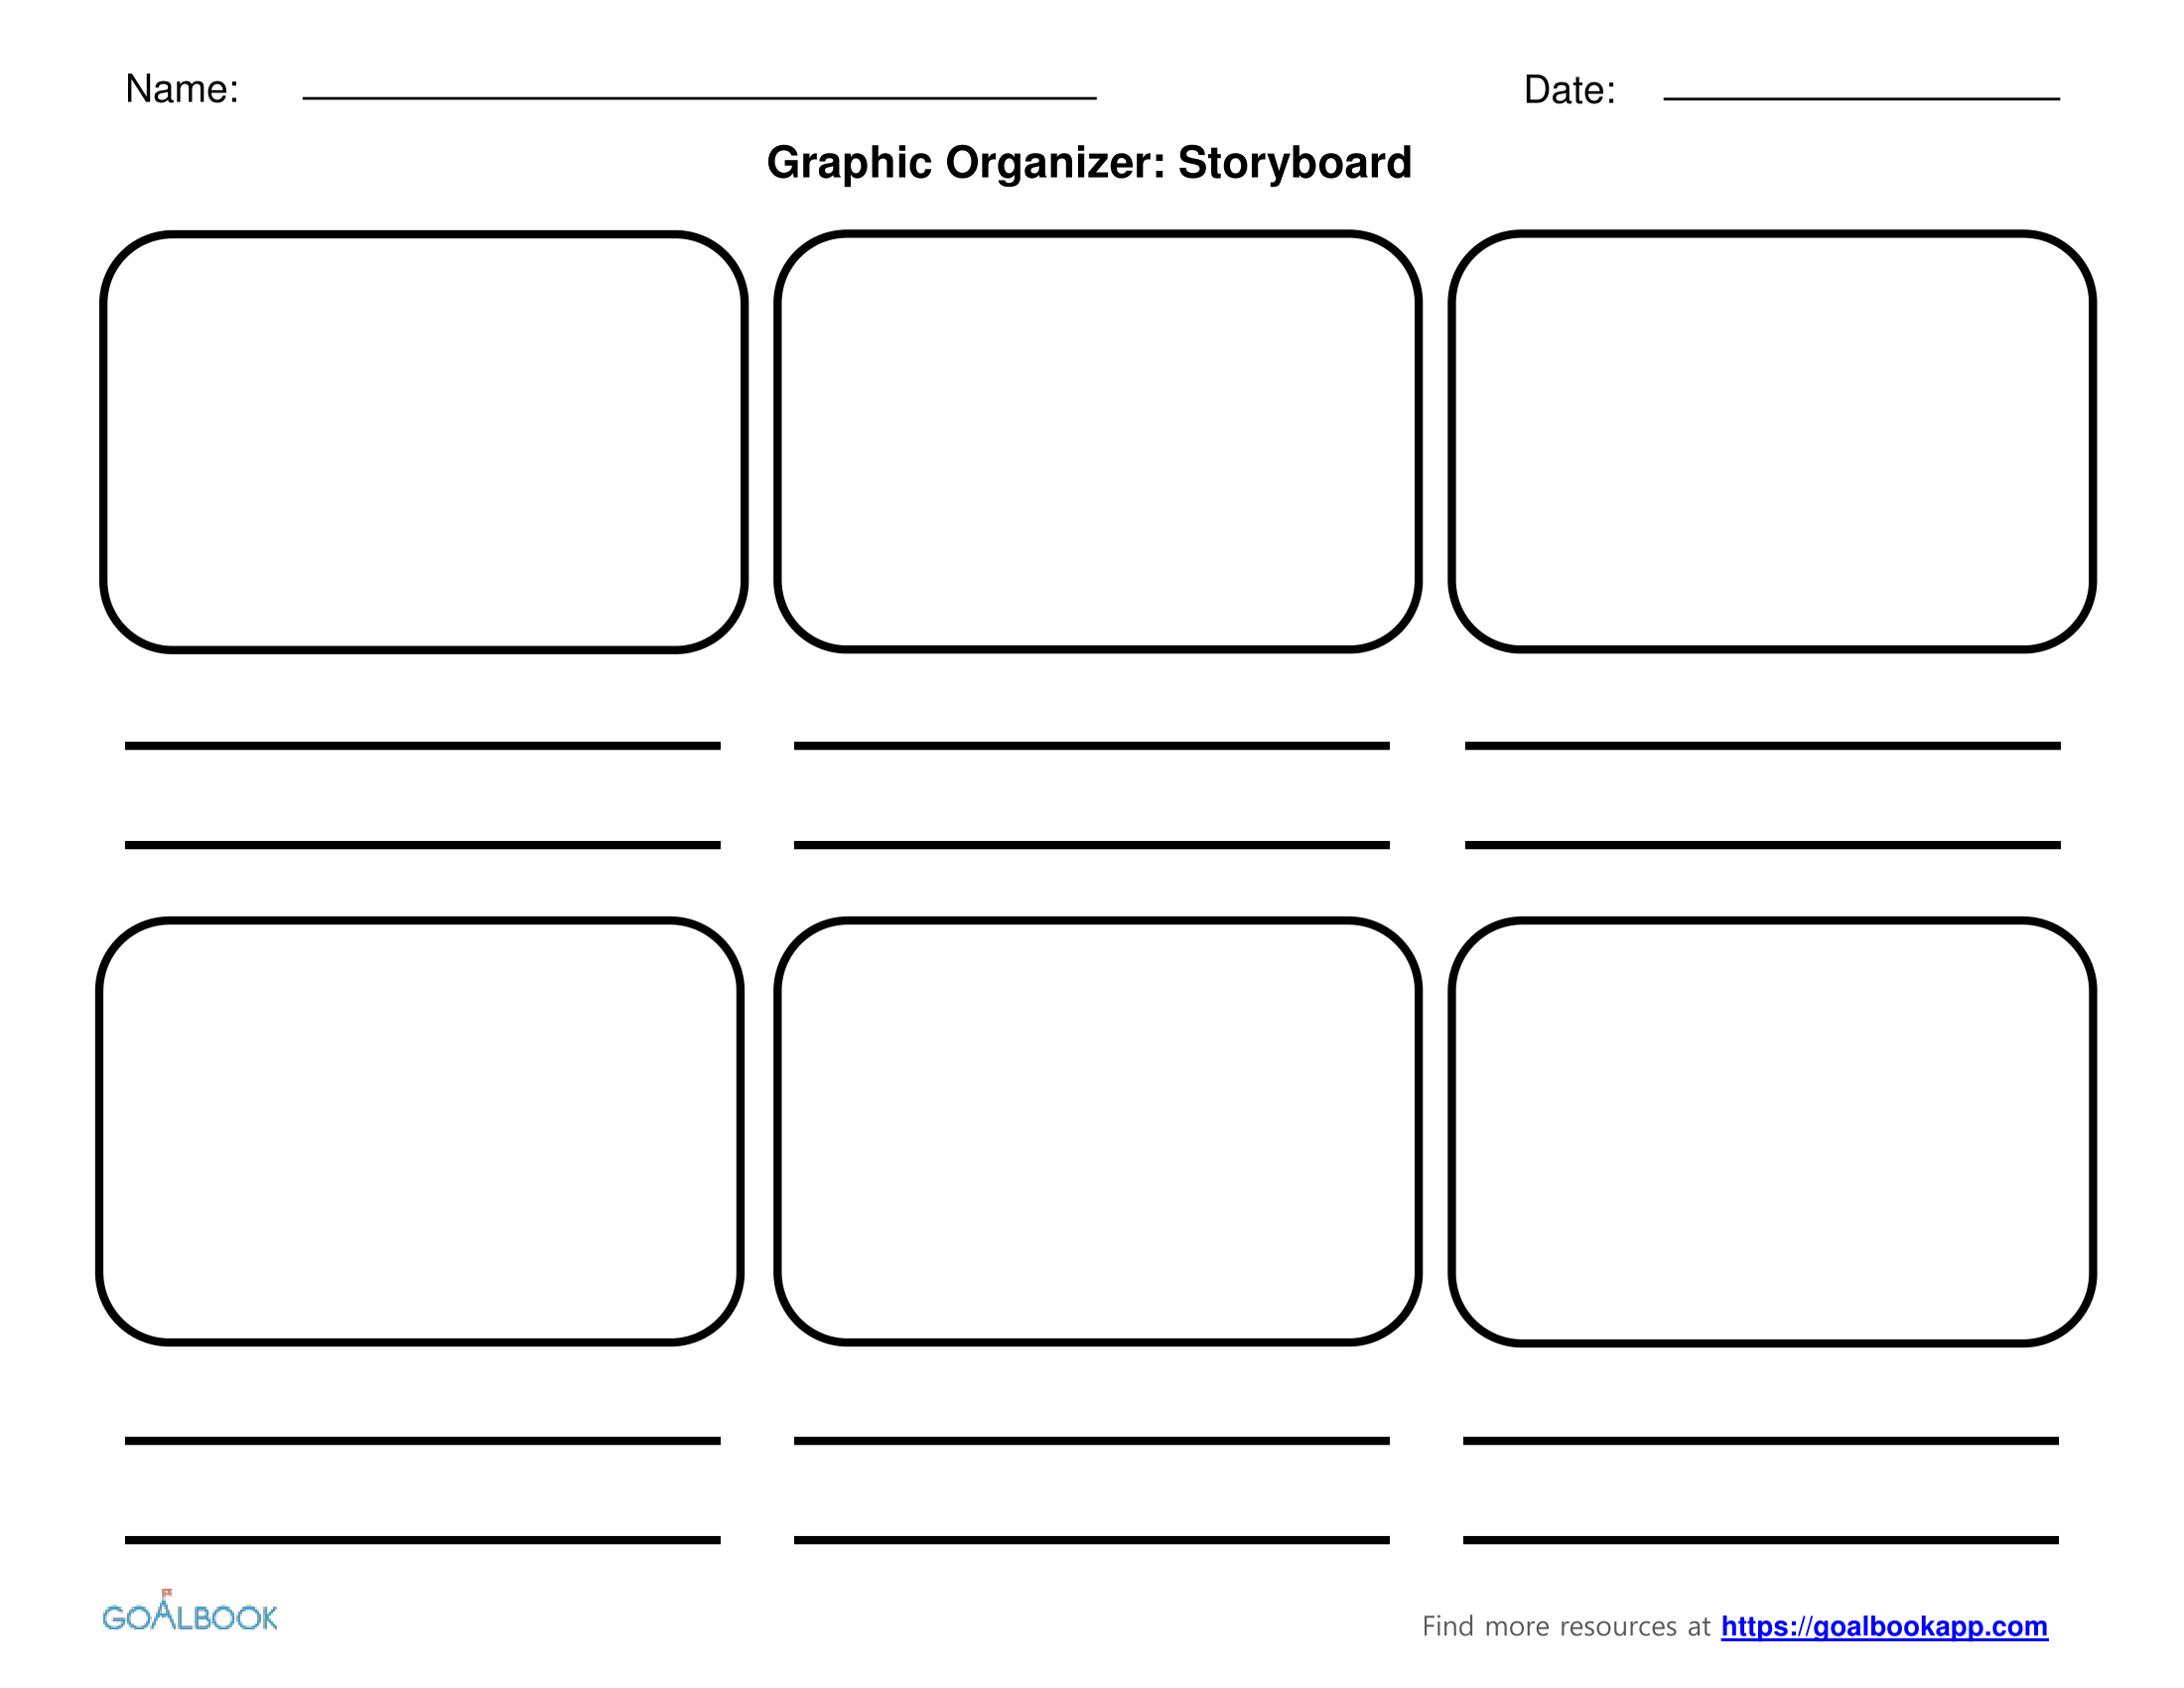 Writing a research paper graphic organizer